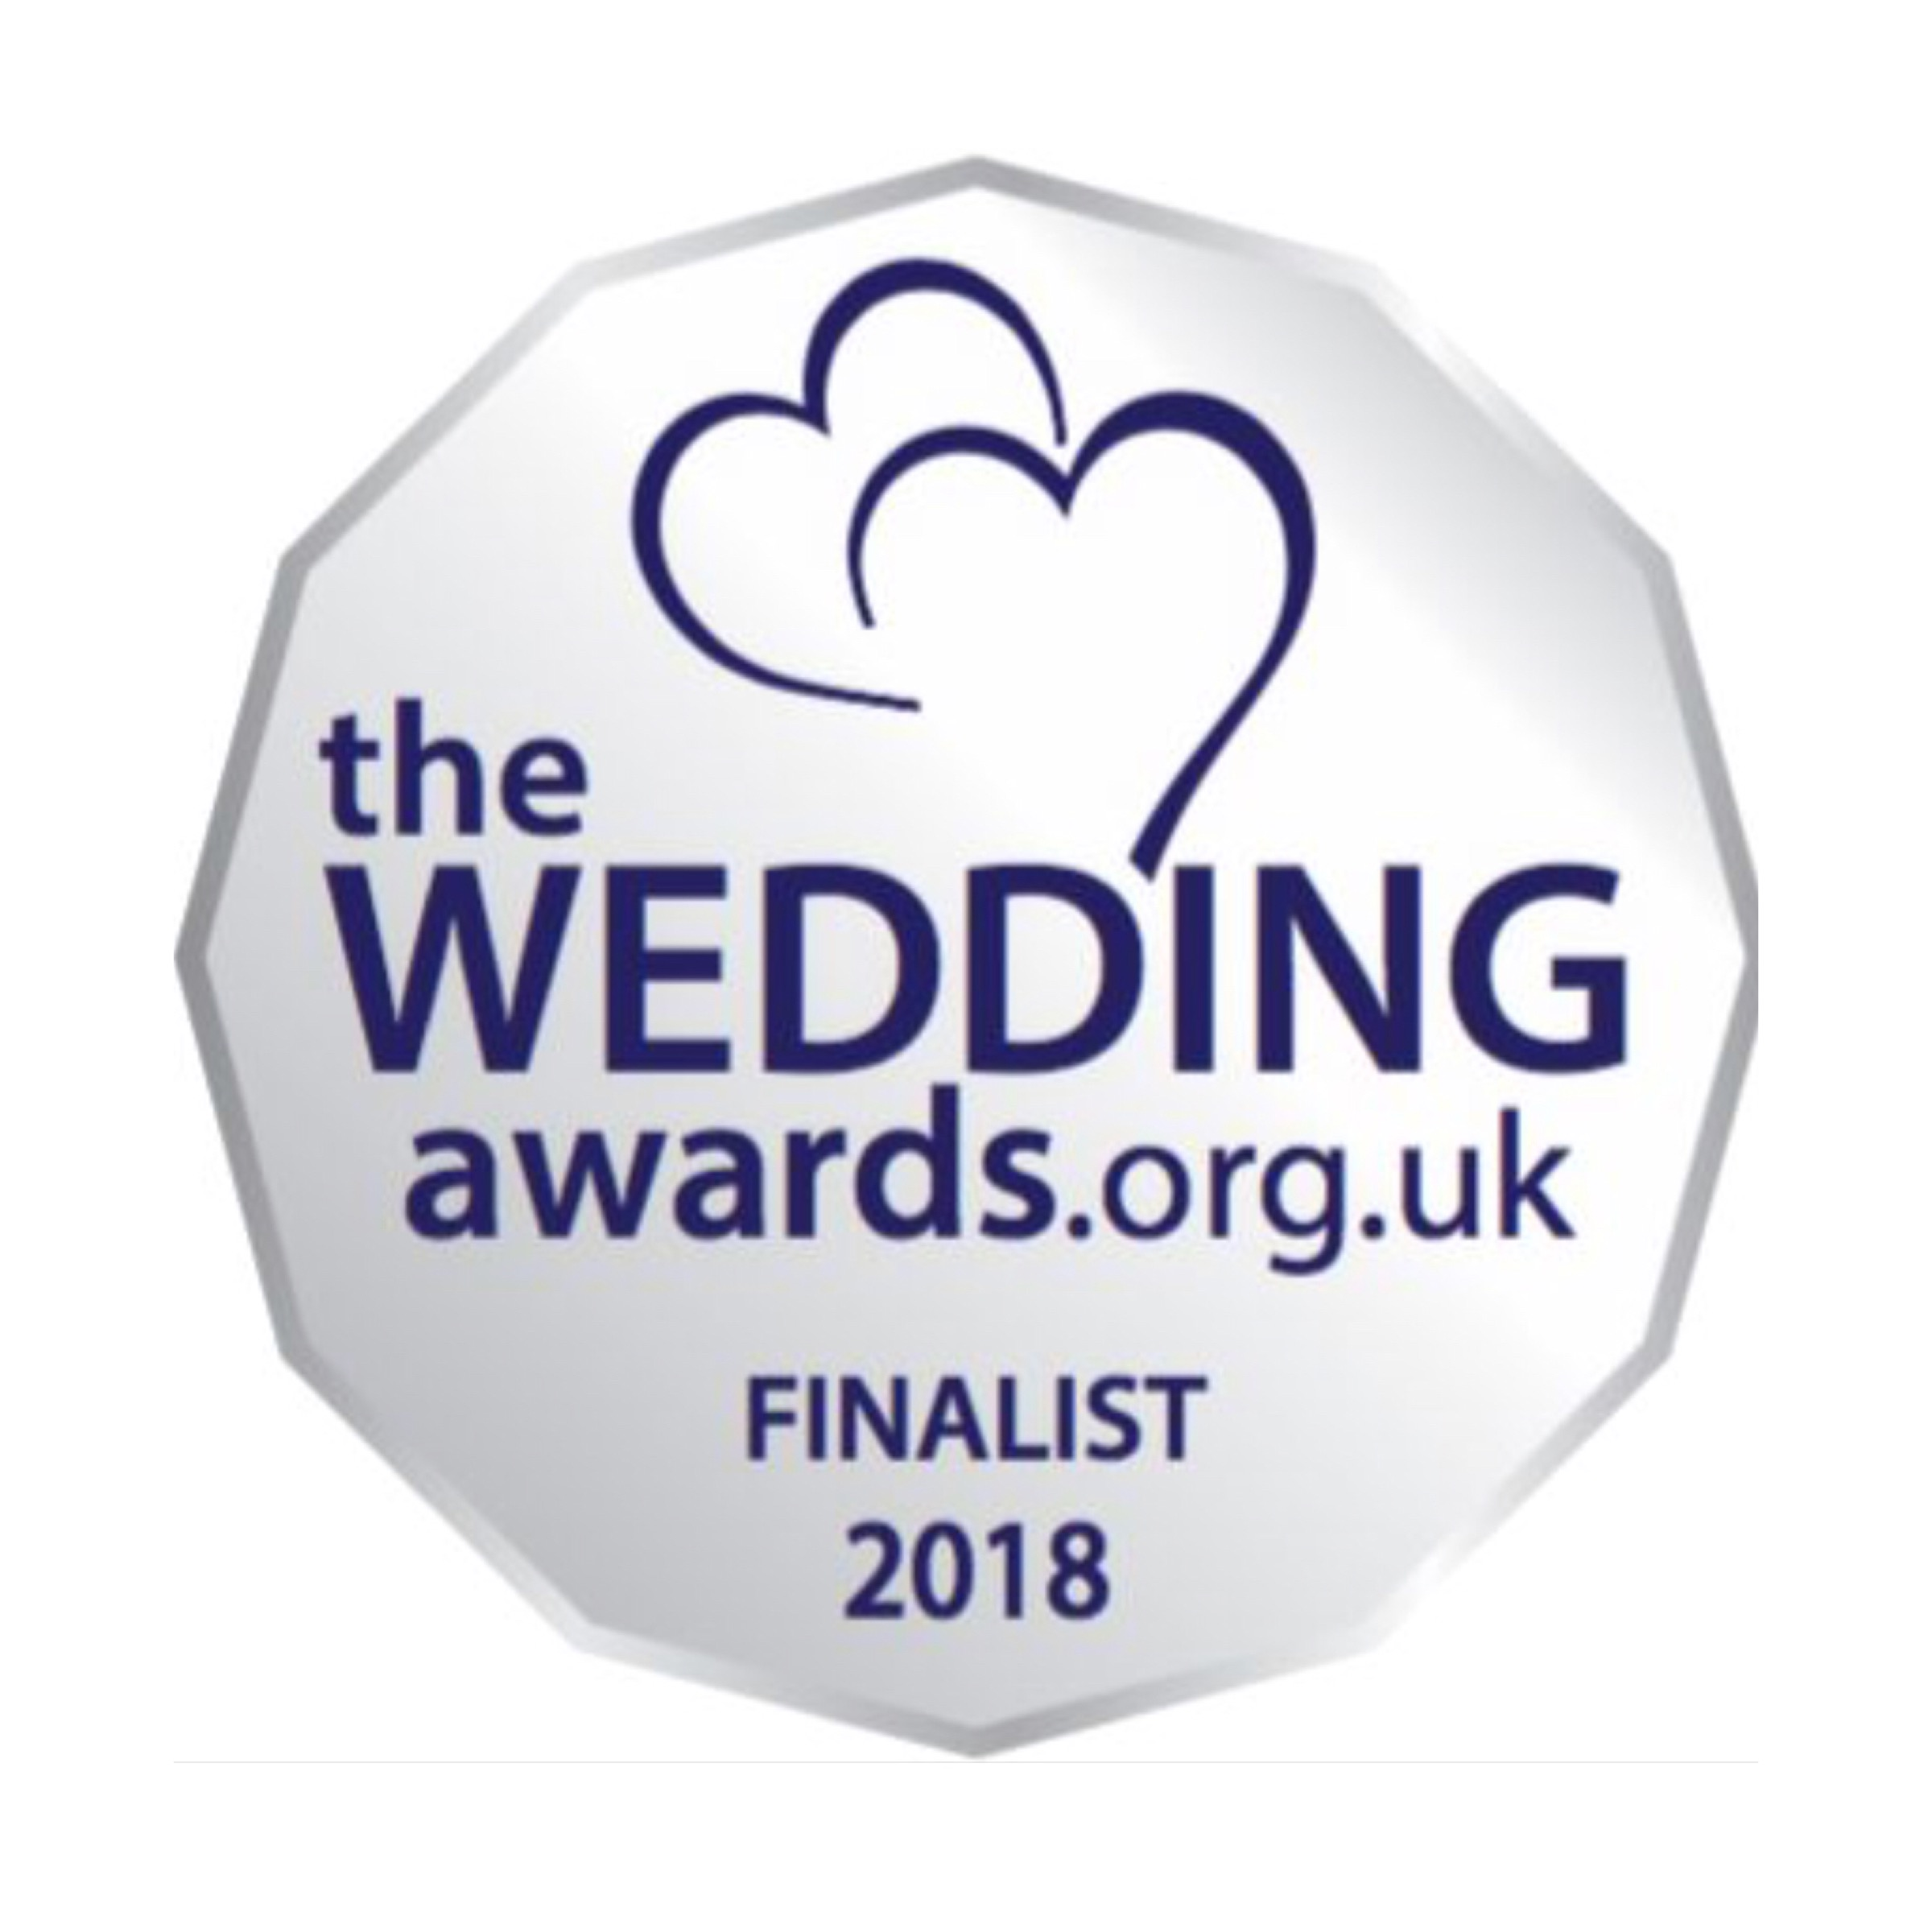 The Wedding Awards 2018 Finalist